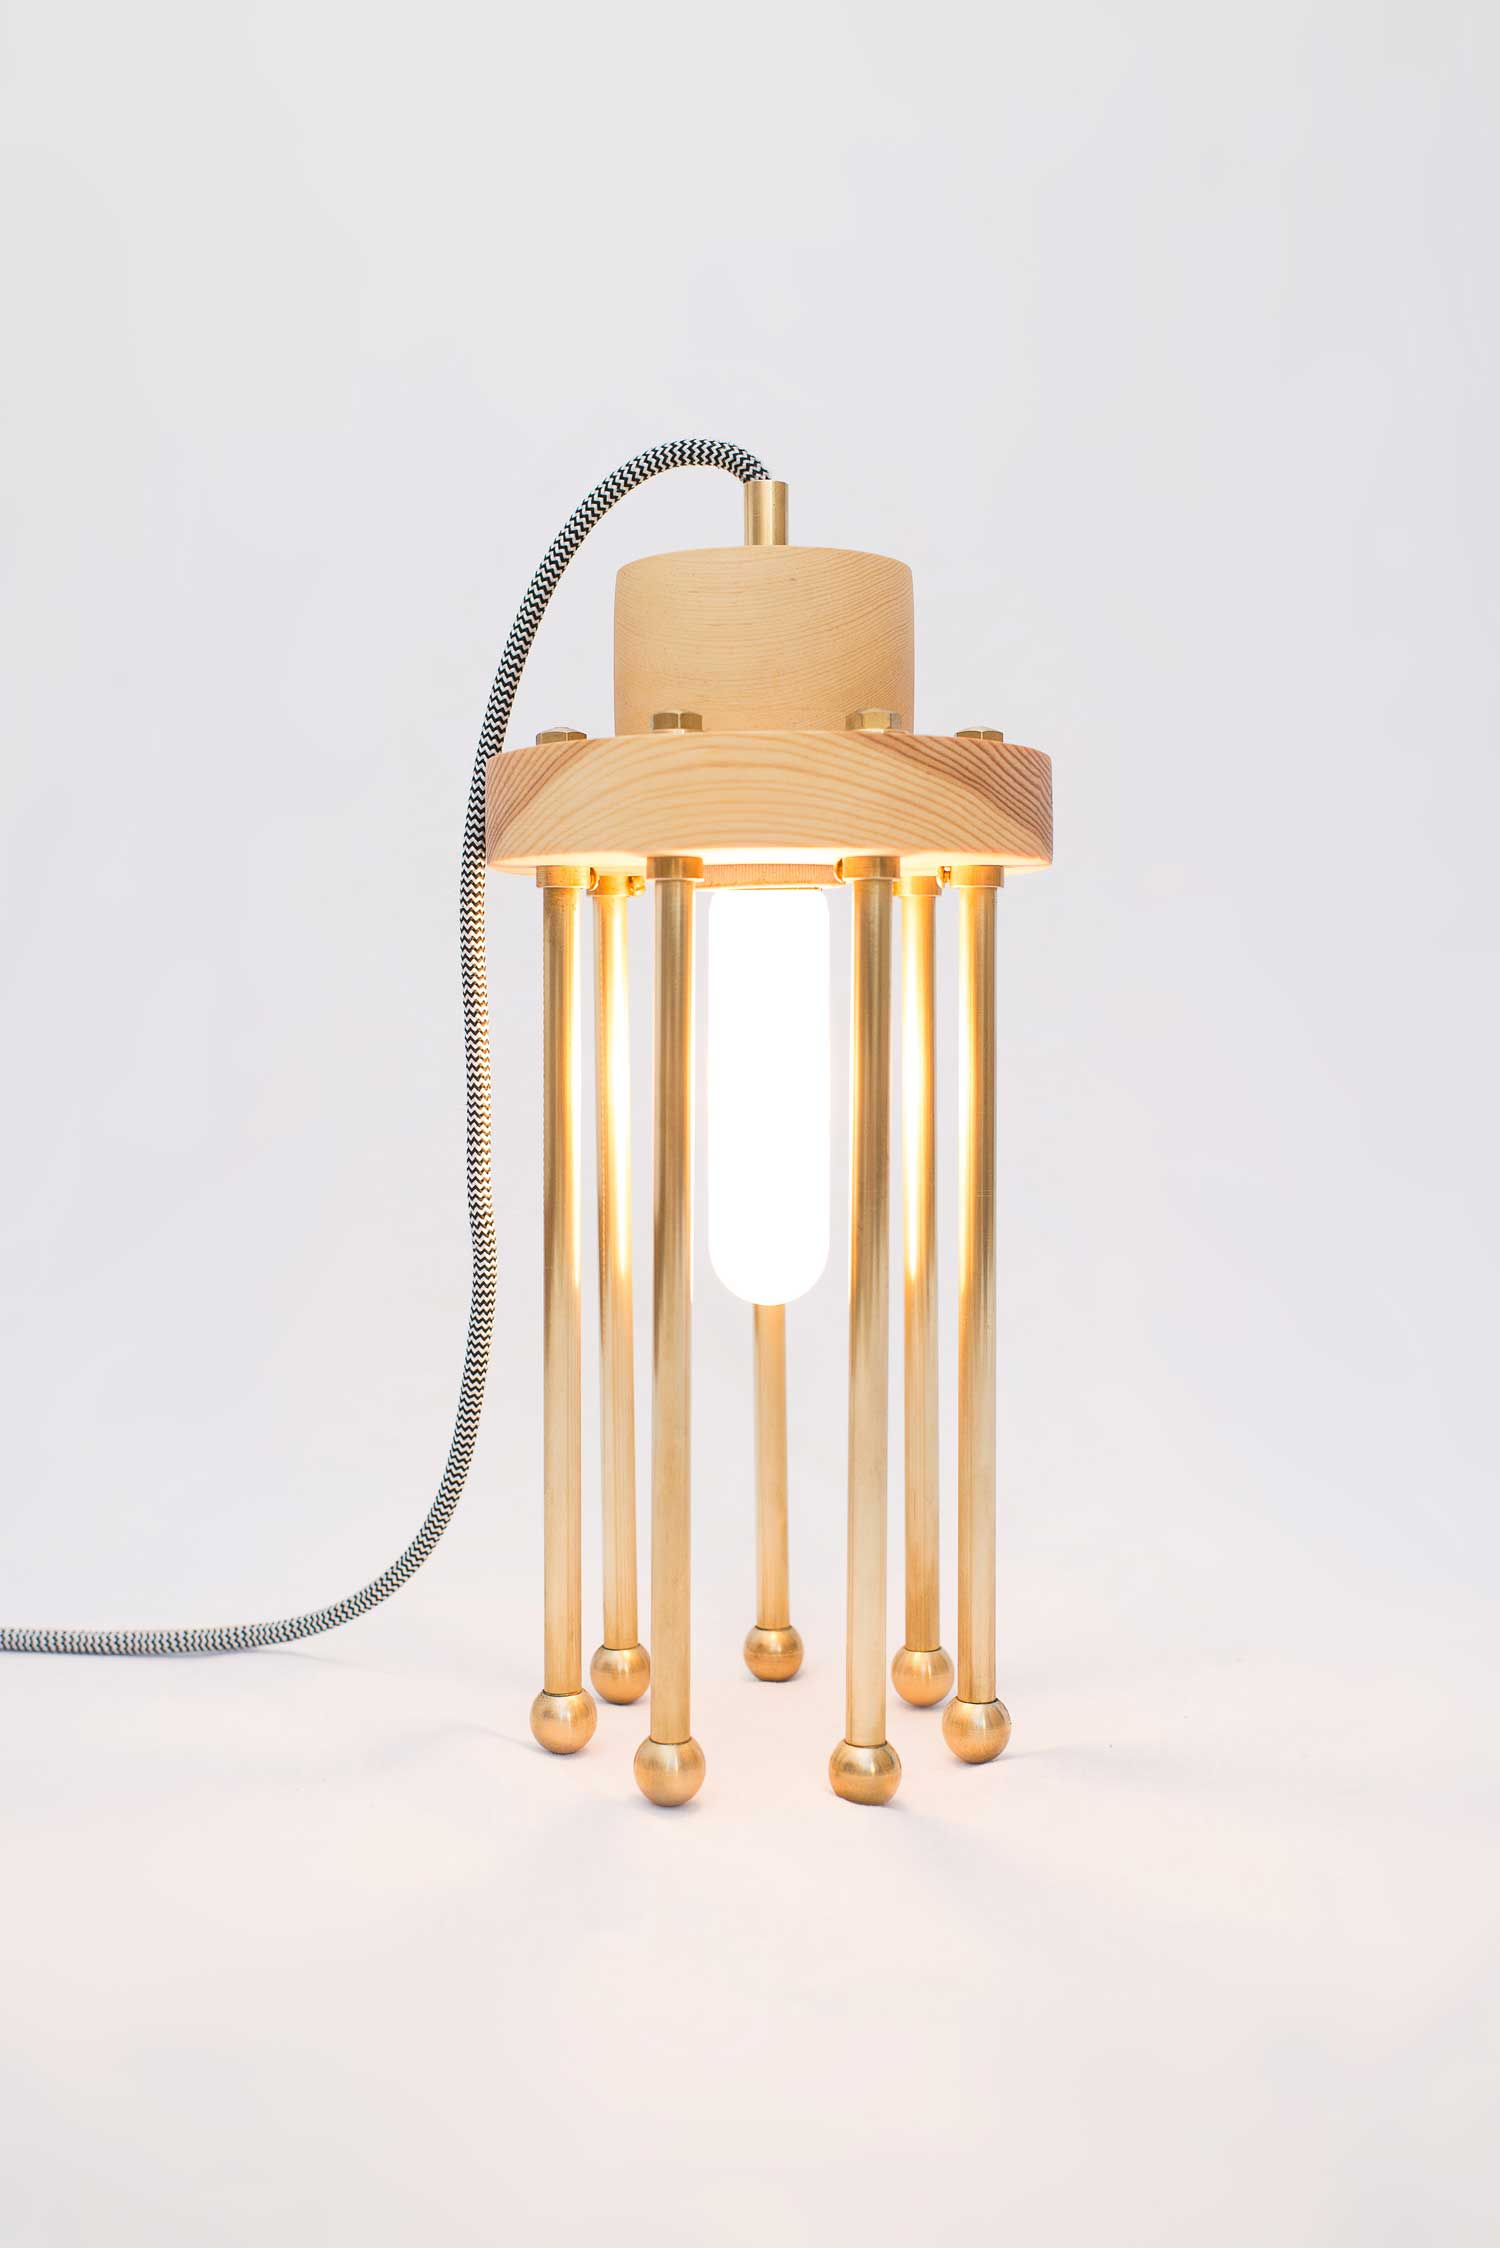 Handmade Lighting and Design Accessories by Antonito y Manolin | Yellowtrace